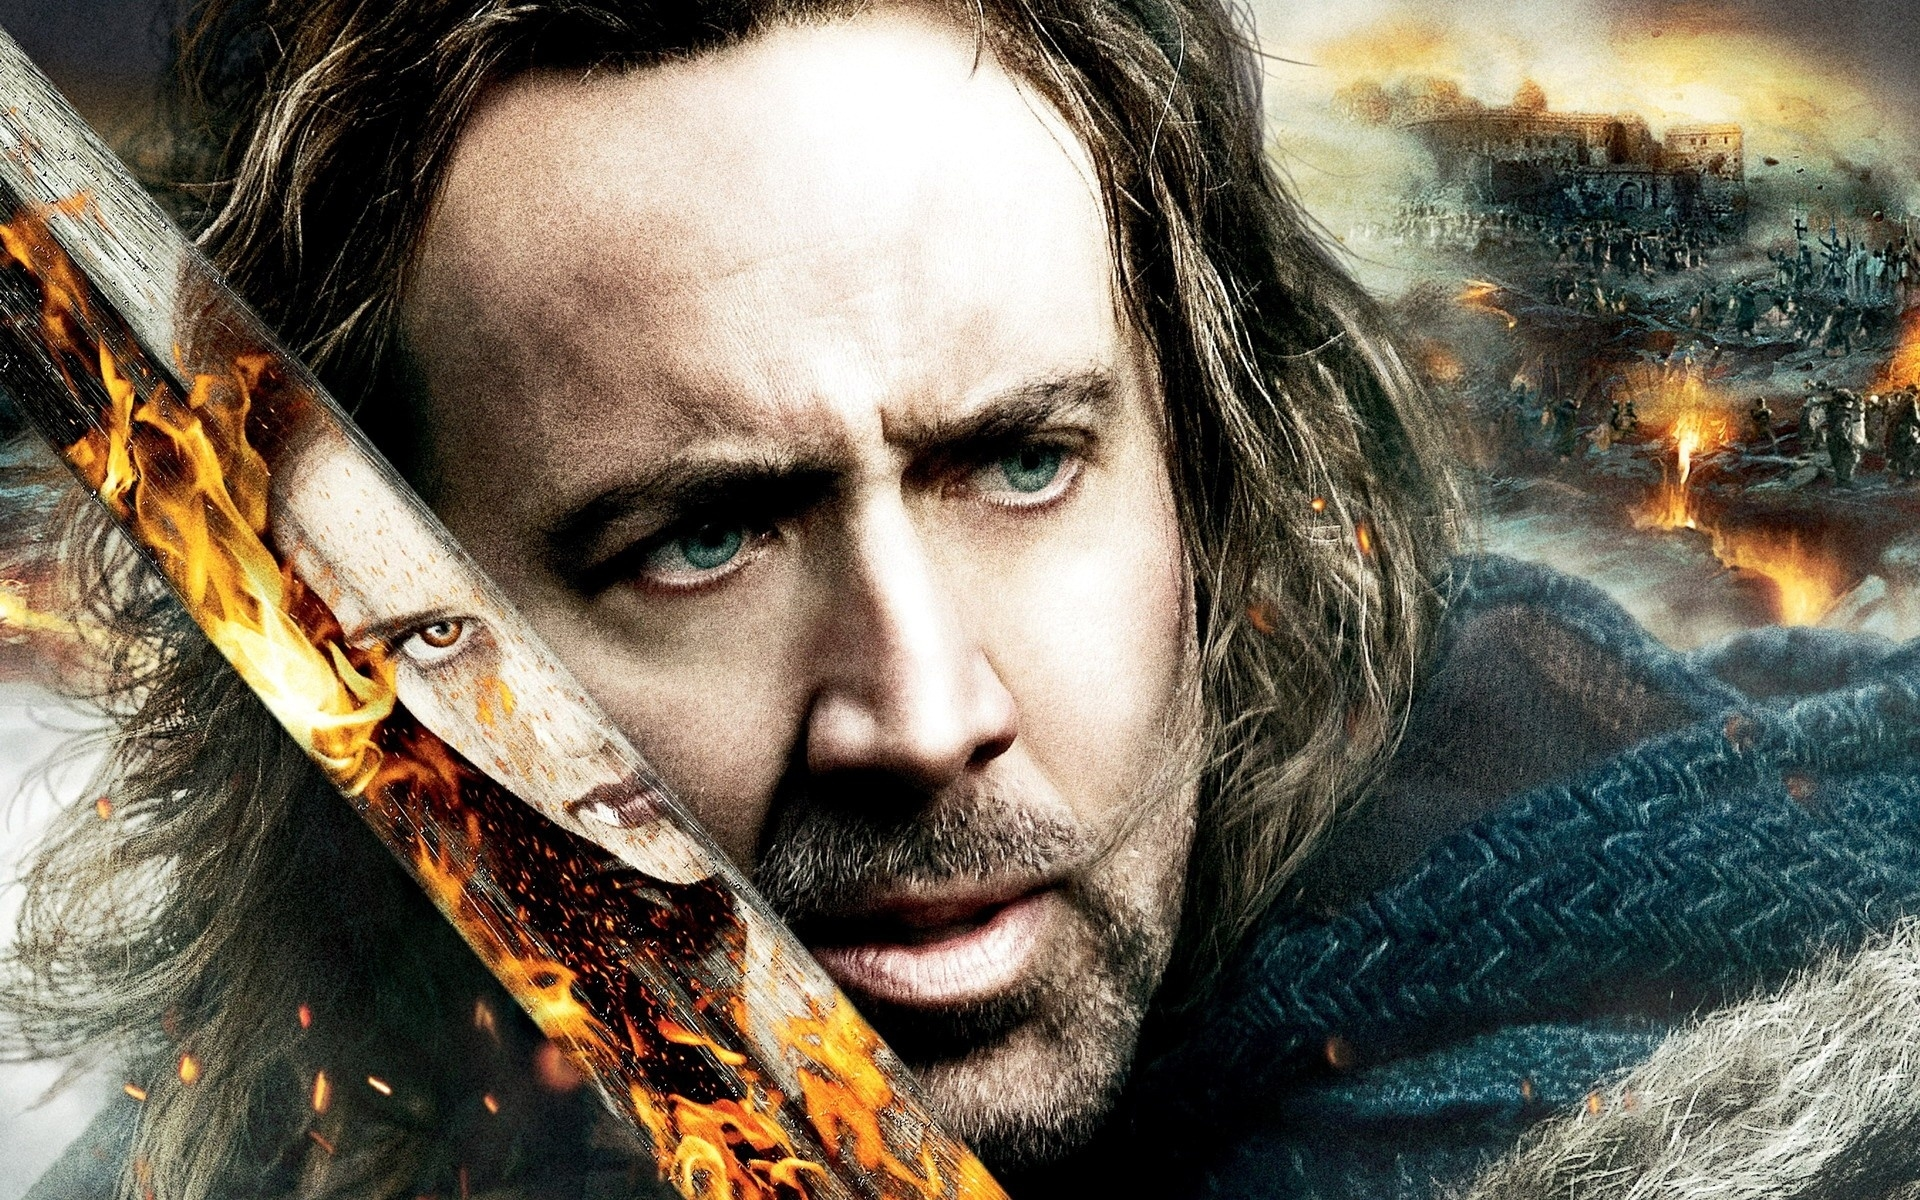 Nicolas Cage Wallpaper   wall4ever 1920x1200